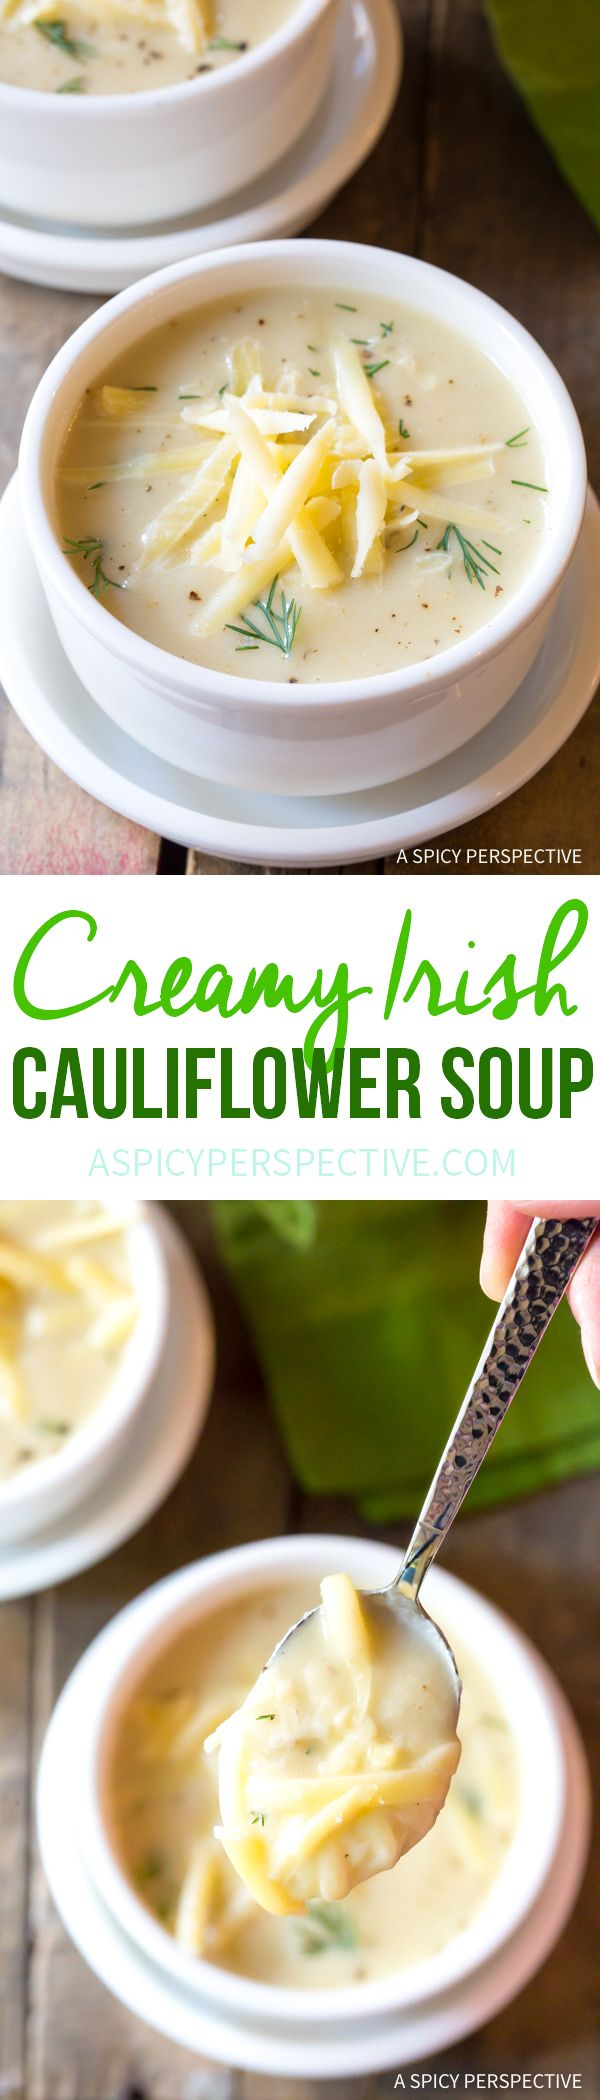 Irresistible Irish Creamy Cauliflower Soup Recipe for Saint Patrick's Day! via @spicyperspectiv